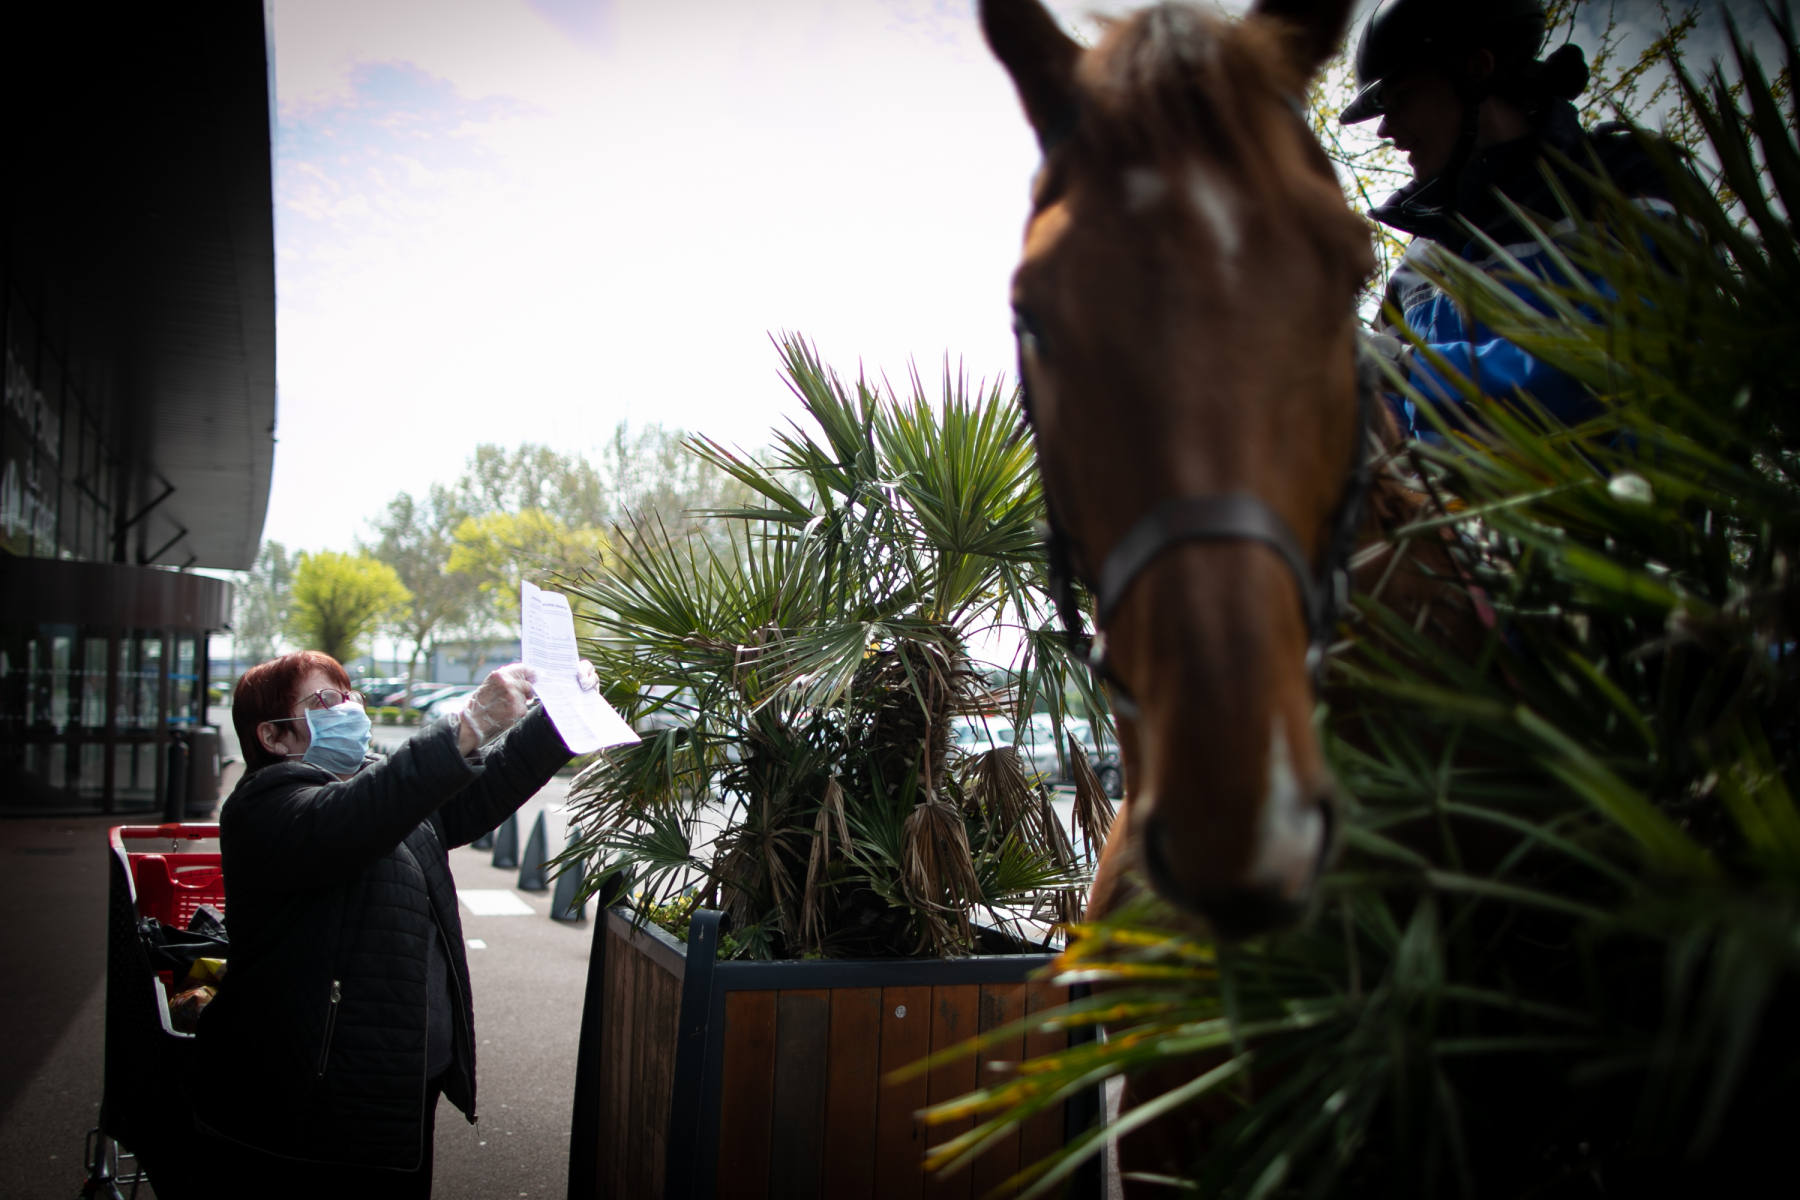 A woman shows her mobility document in front of a supermarket of Courseulles-sur-Mer, northwestern France, to Garde républicaine mounted gendarmes, on April 17, 2020, following a strict lockdown across France to stop the spread of COVID-19, caused by the novel coronavirus.